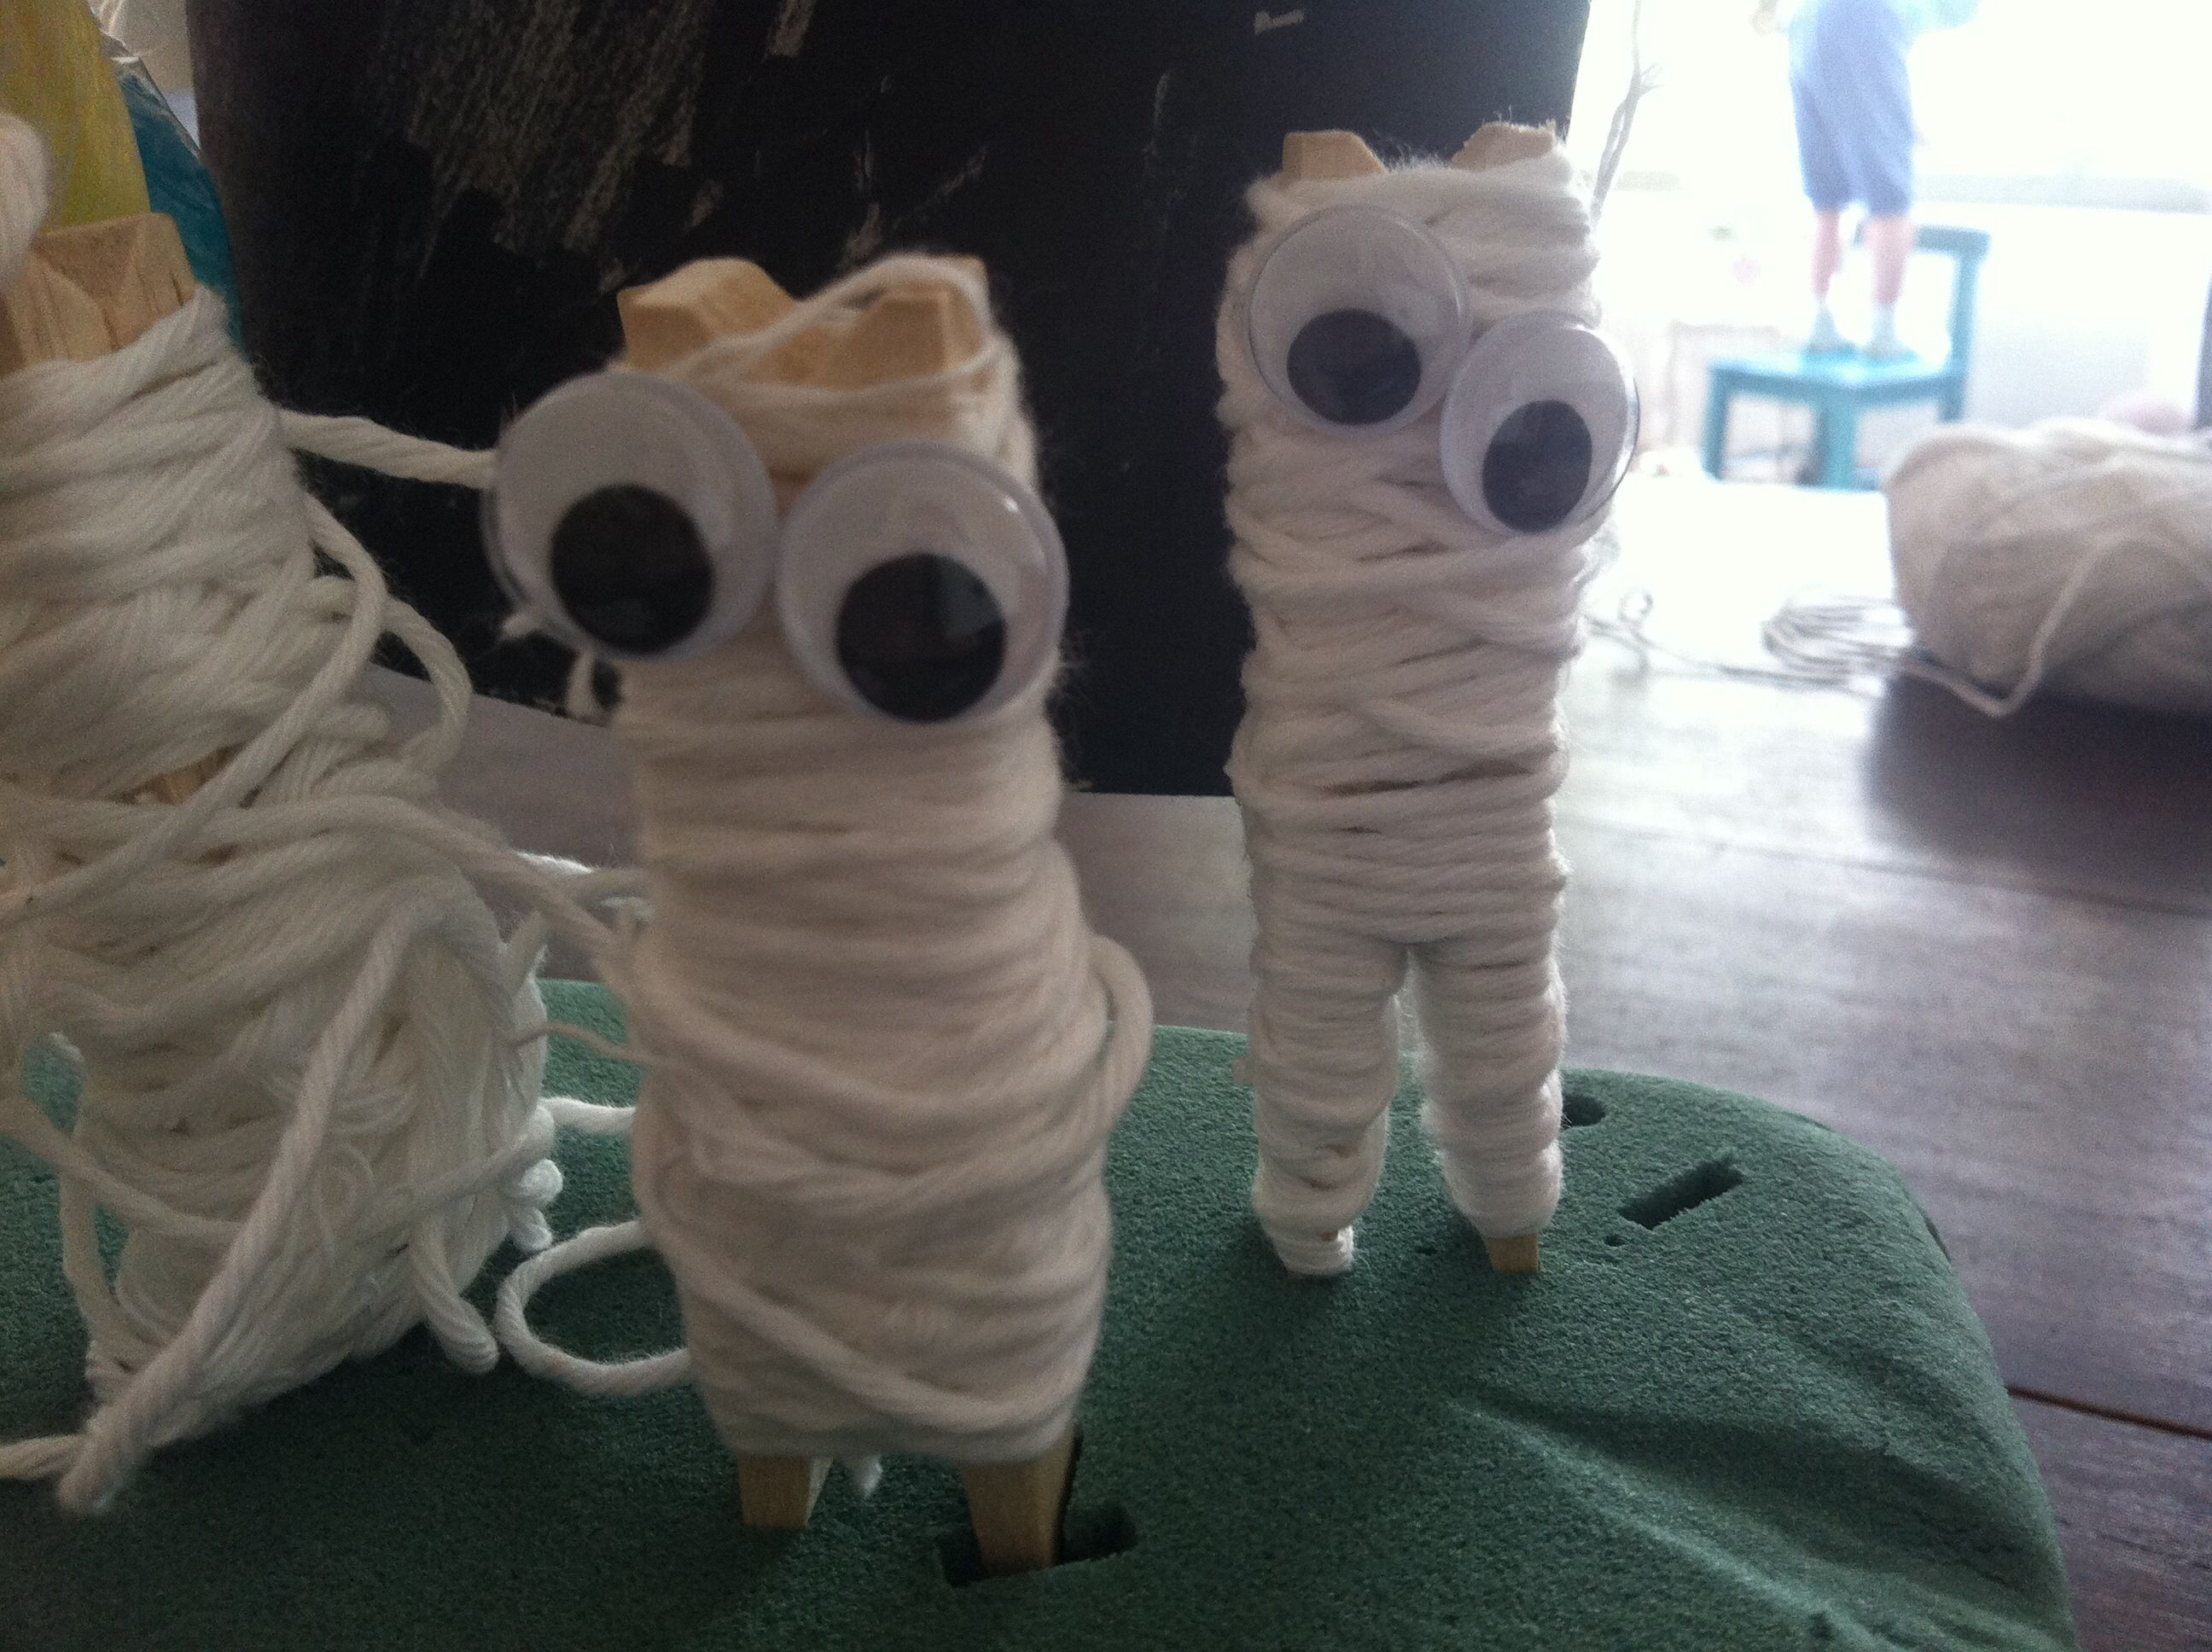 Zombies made from clothespins and yarn Easy Halloween craft